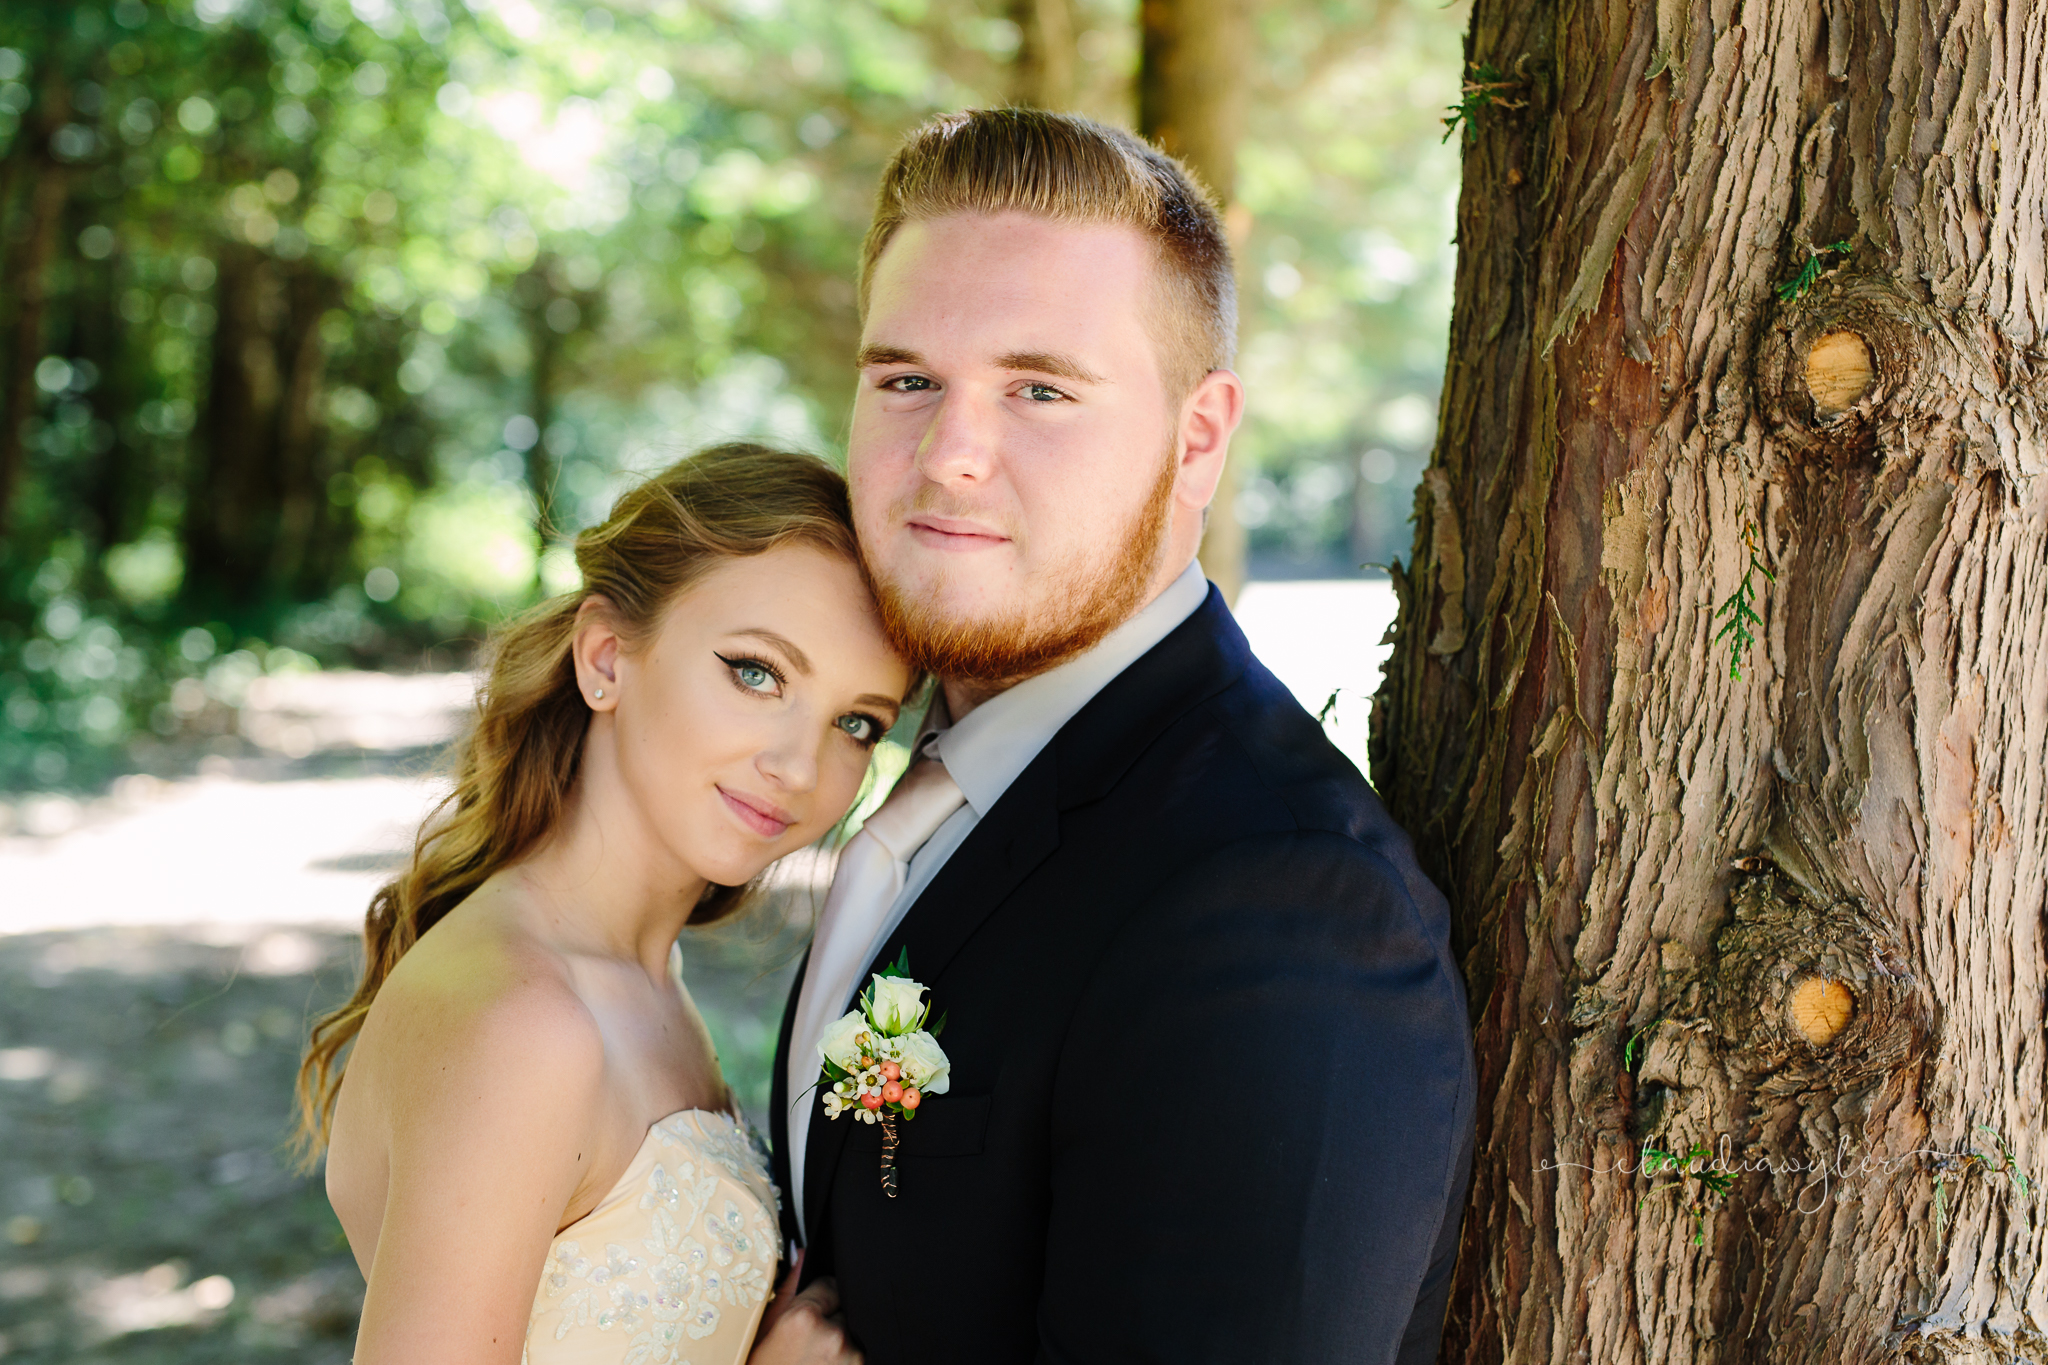 Abbotsford, BC |  Chilliwack, BC | Langley, British Columbia| Fraser Valley Prom Photographer| Teen Photographer | Prom Graduation Senior Session | Claudia Wyler Photography